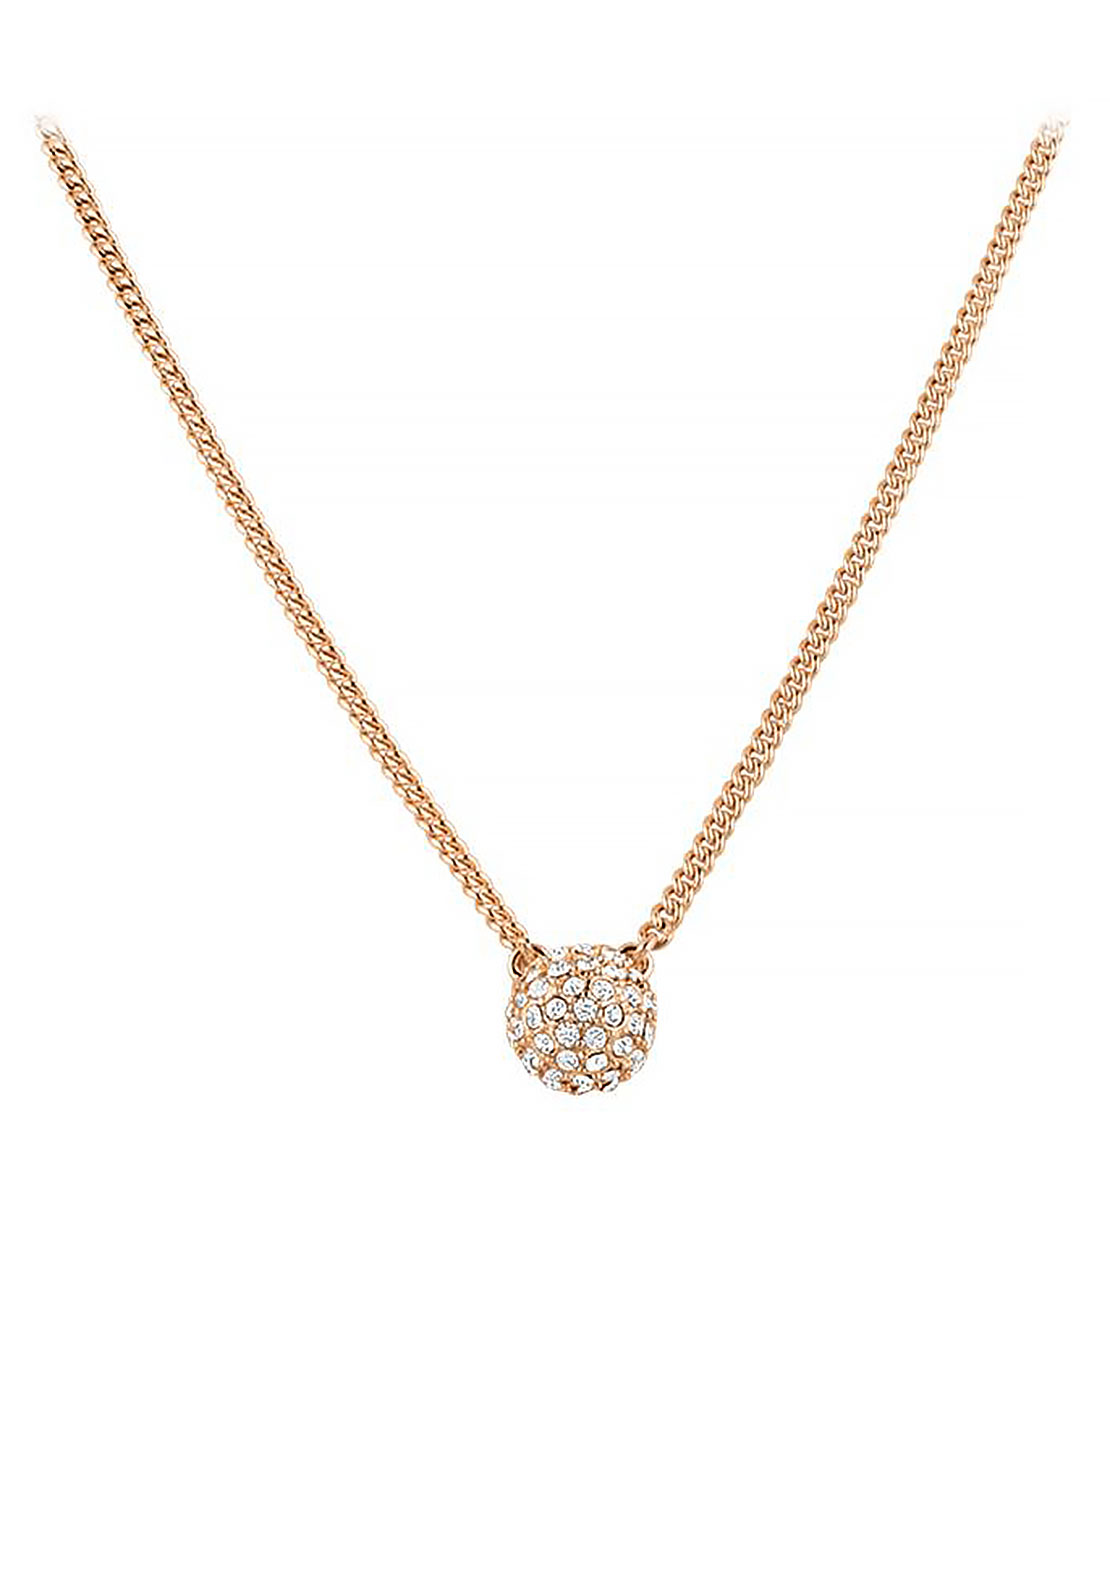 Dyrberg Kern Fiuma Chain Necklace, Rose Gold